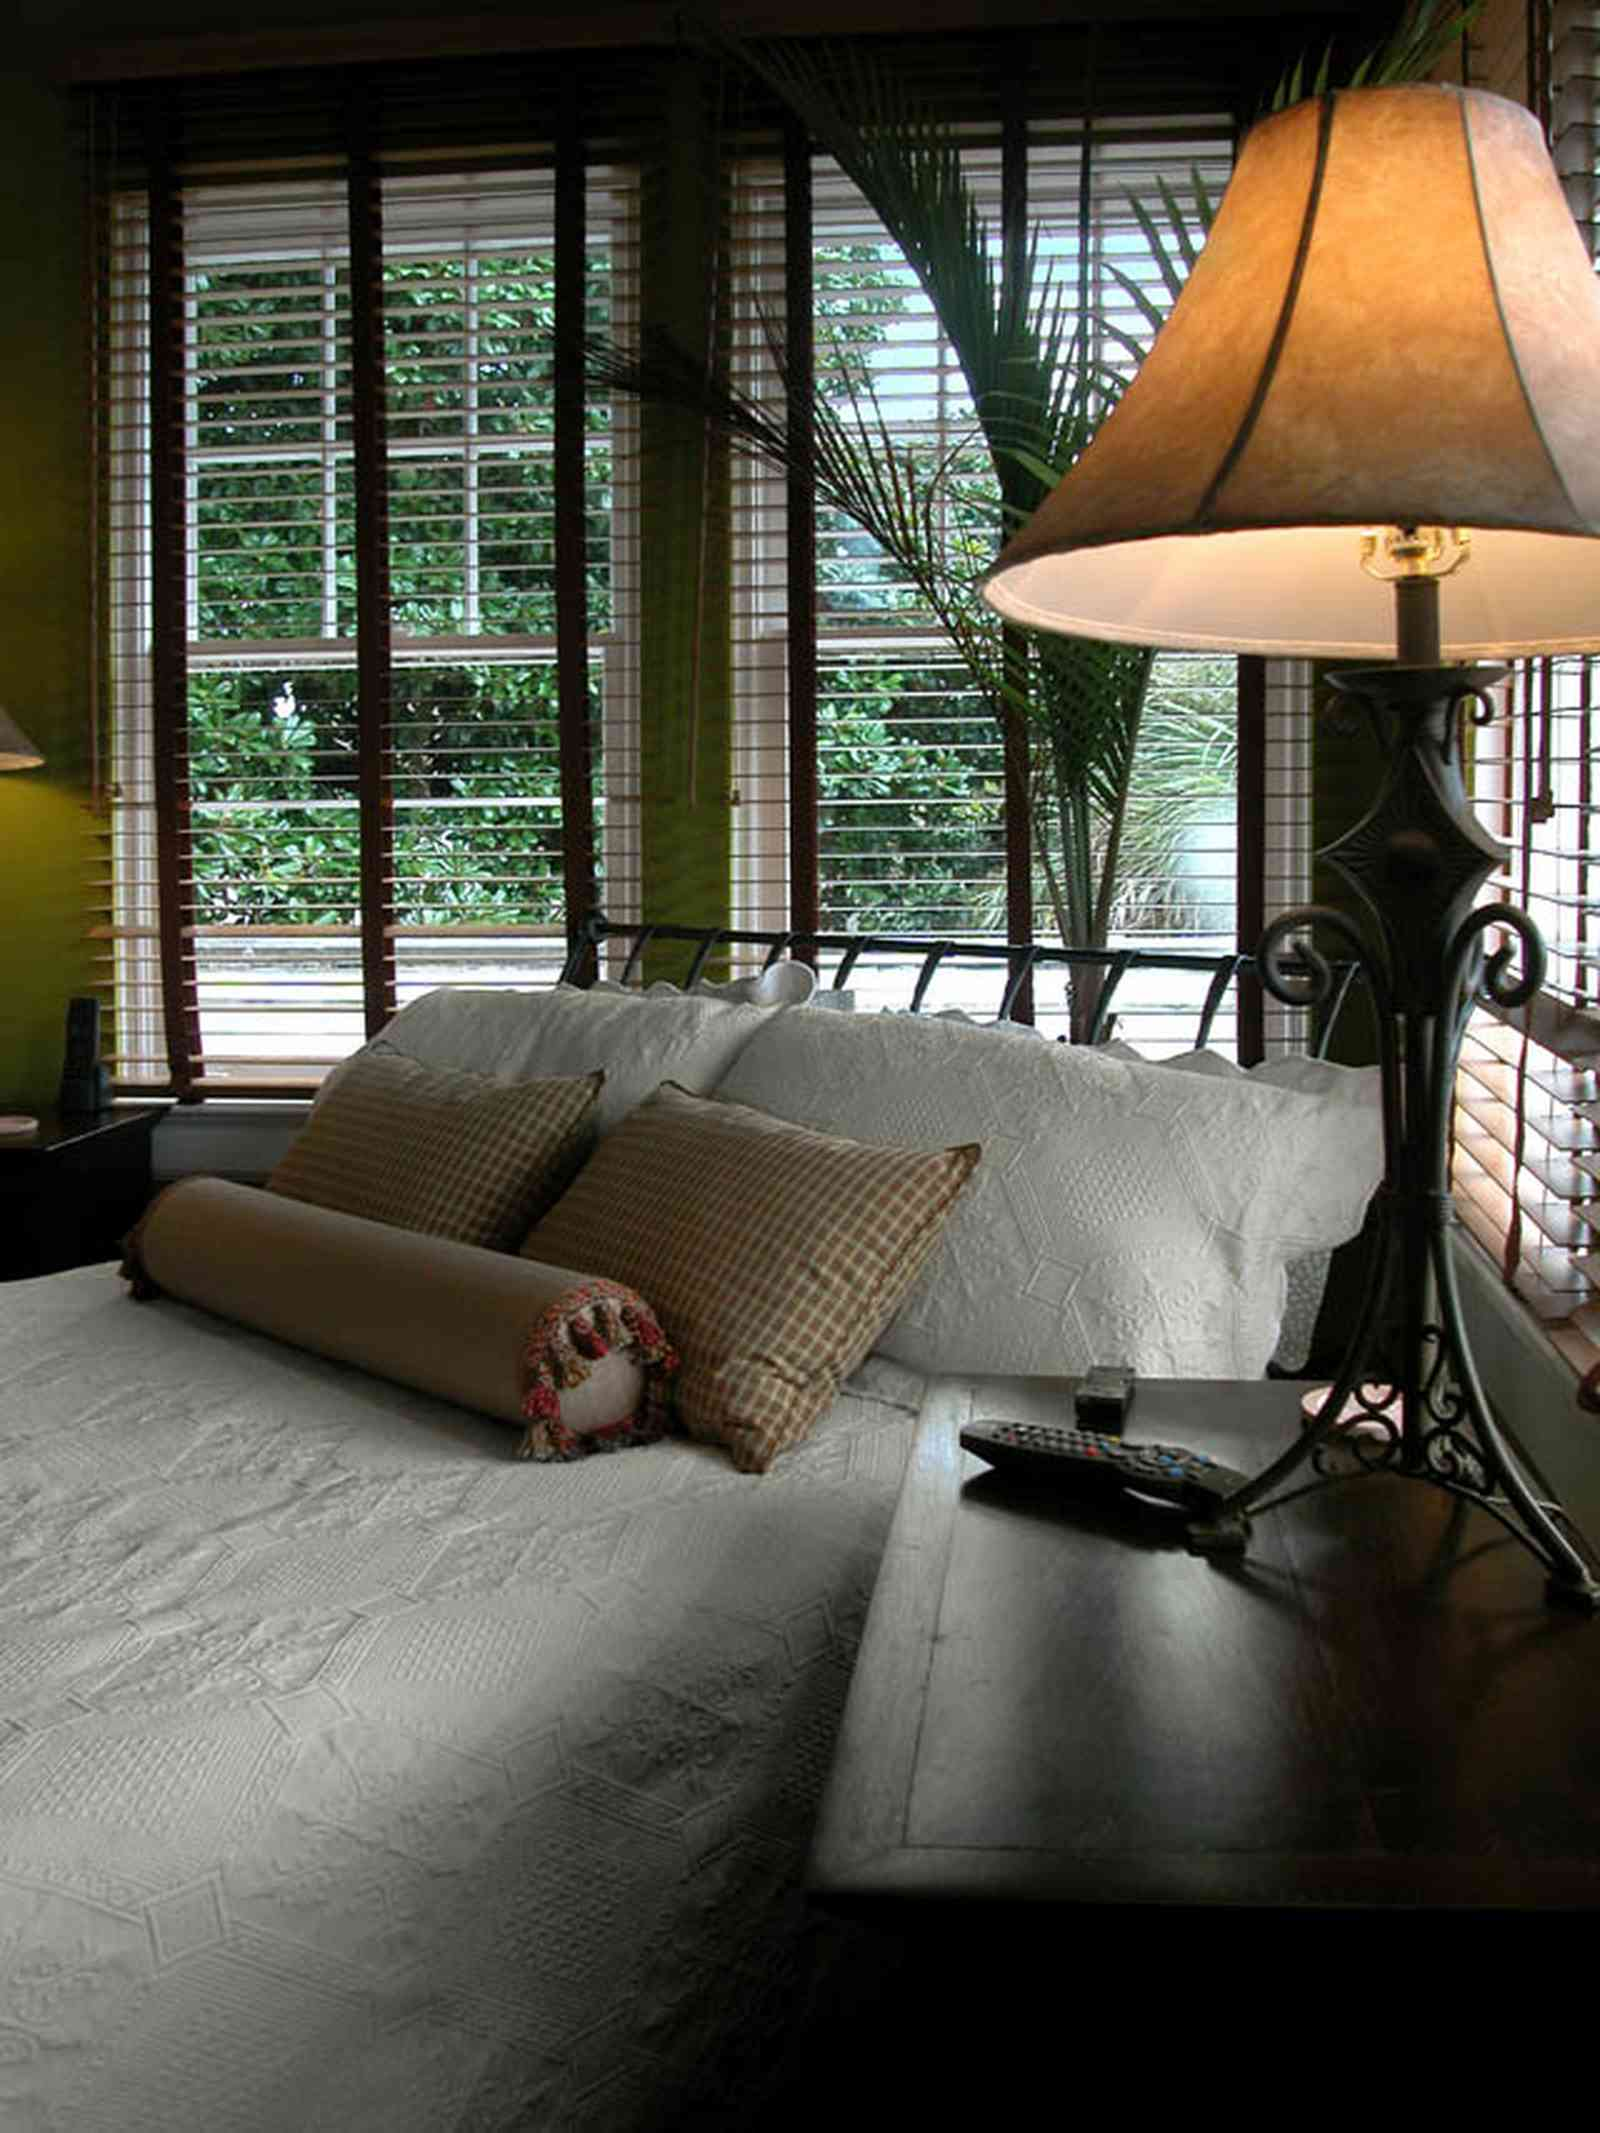 North-Hill:-123-West-Lloyd-Street_39.jpg:  master bedroom suite, wrought-iron bed, ventian blinds, wooden blinds